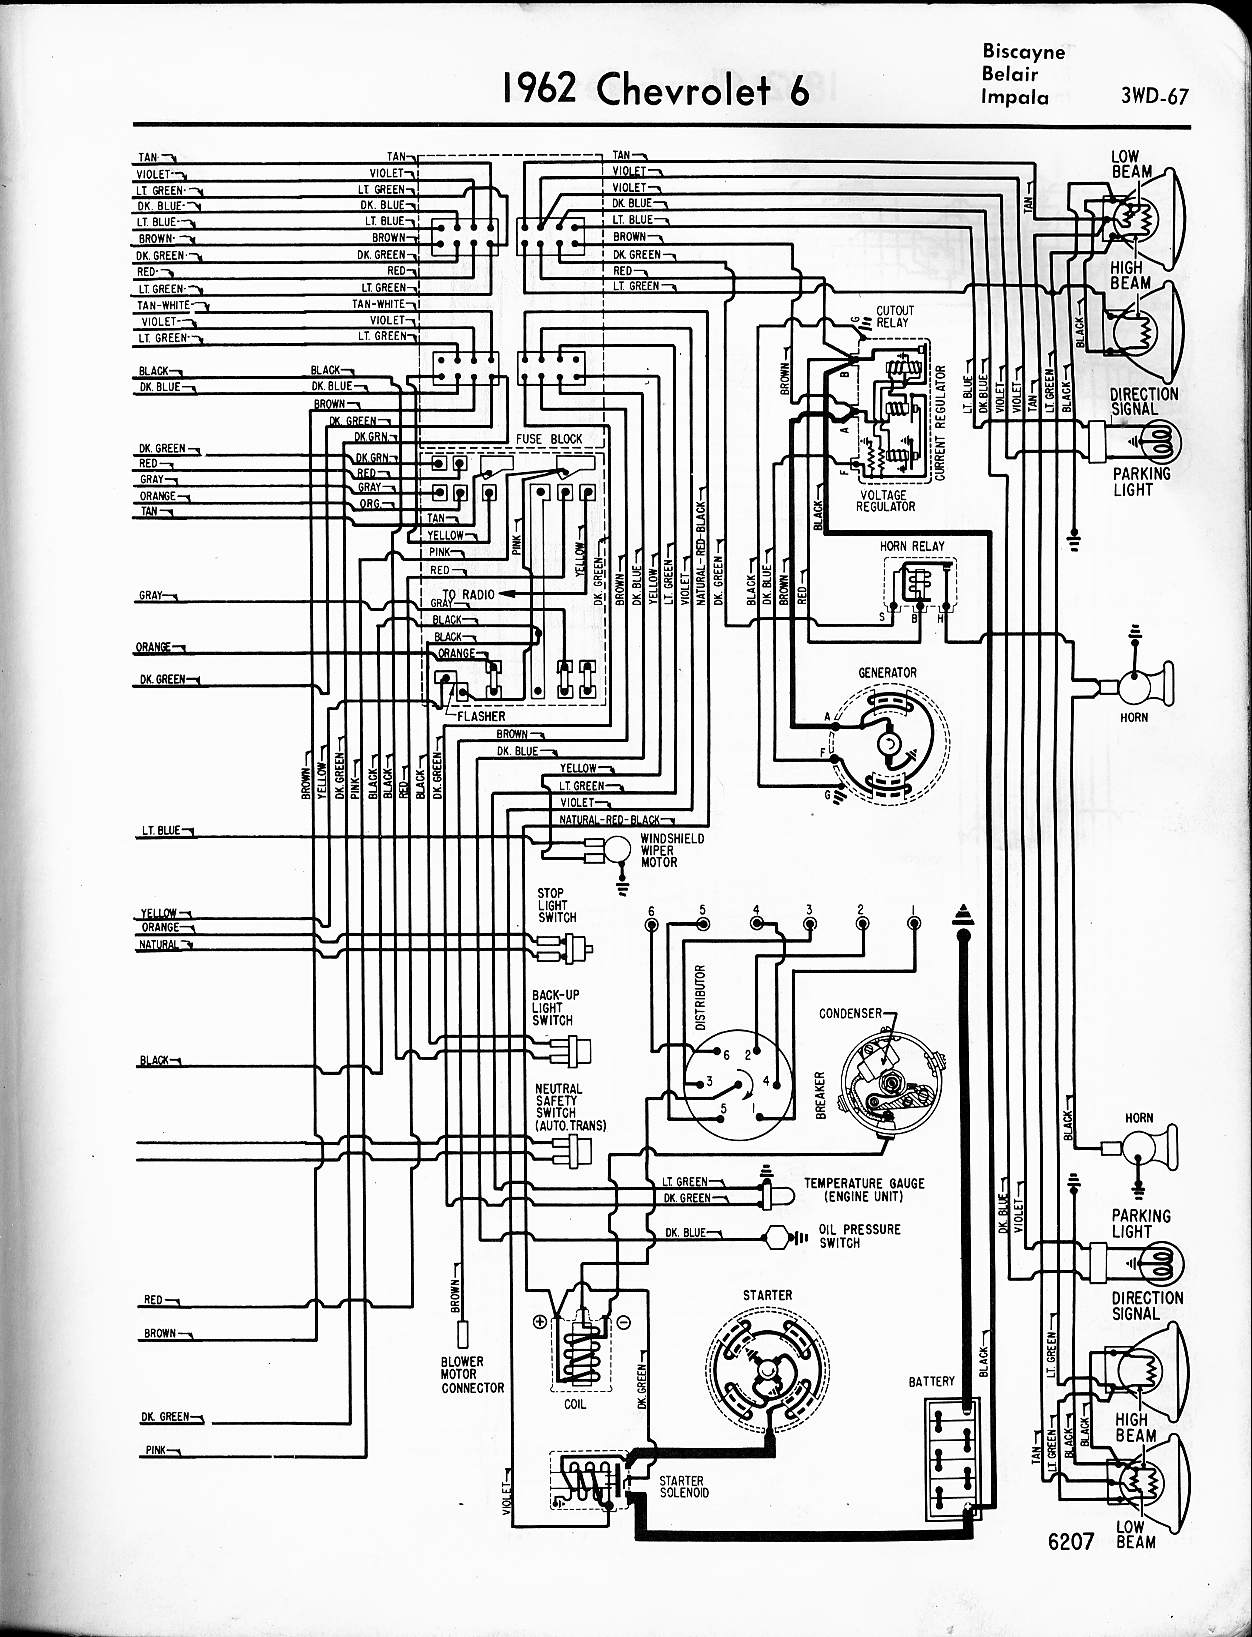 1963 Willys Cj5 Wiring Diagram Library 81 Jeep Cj7 1962 Impala Just Data Schematic 1969